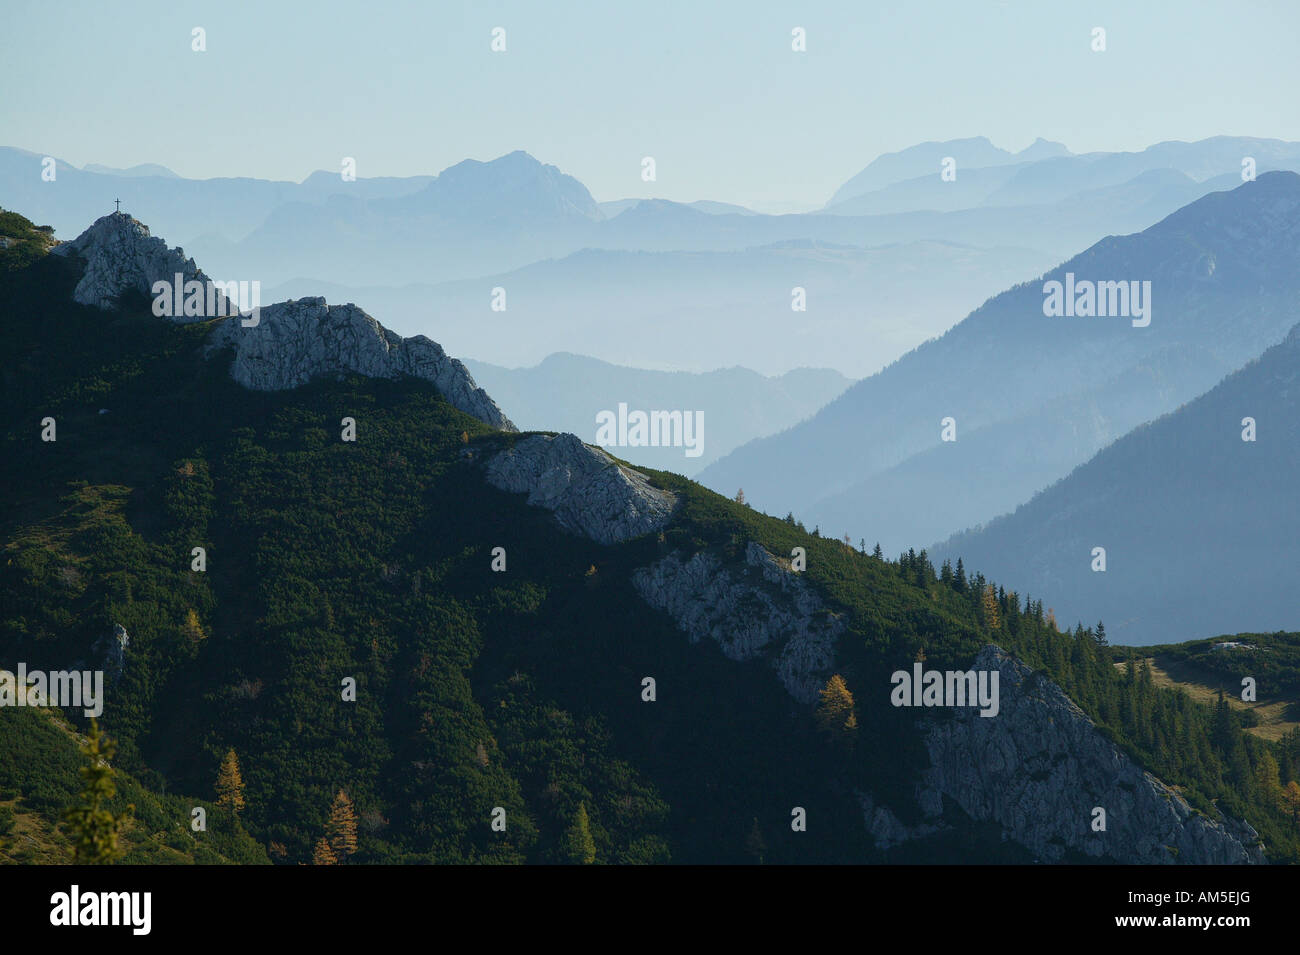 View from Jenner mountain into Salzburger Land (Salzburg State), Berchtesgaden, Upper Bavaria, Germany Stock Photo